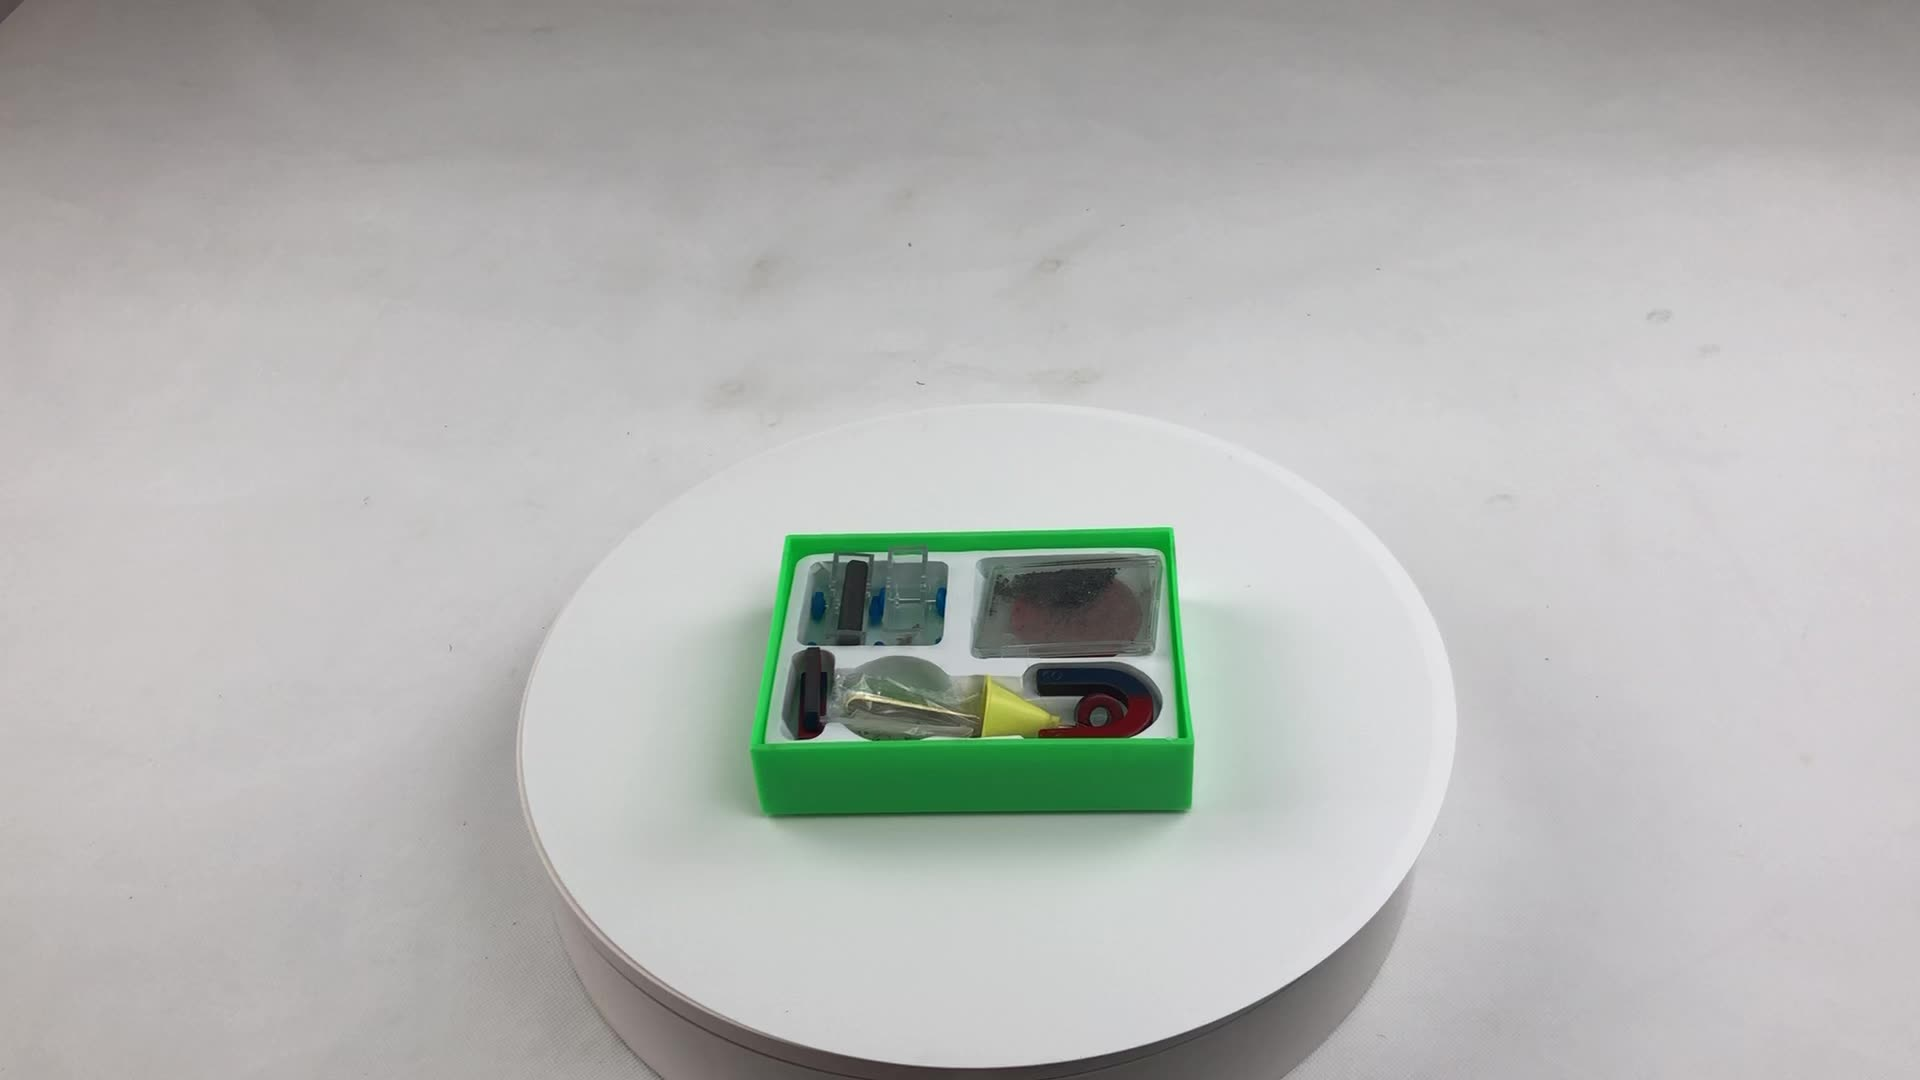 Magnet Kit for Education Science Experiment Tools / science kit / science experiment kits